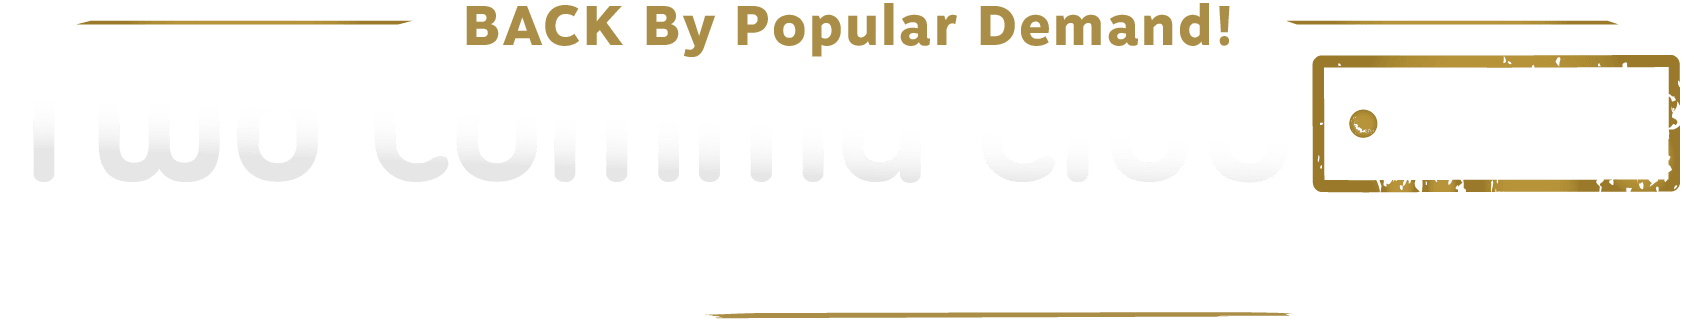 Two Comma Club LIVE Virtual Conference